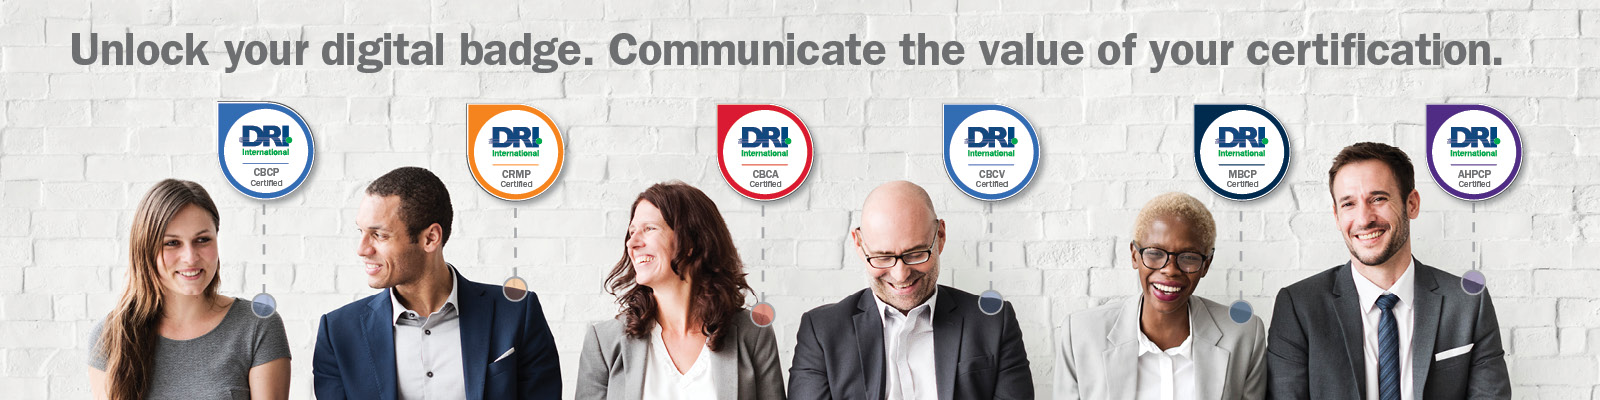 Learn about DRI digital badges!